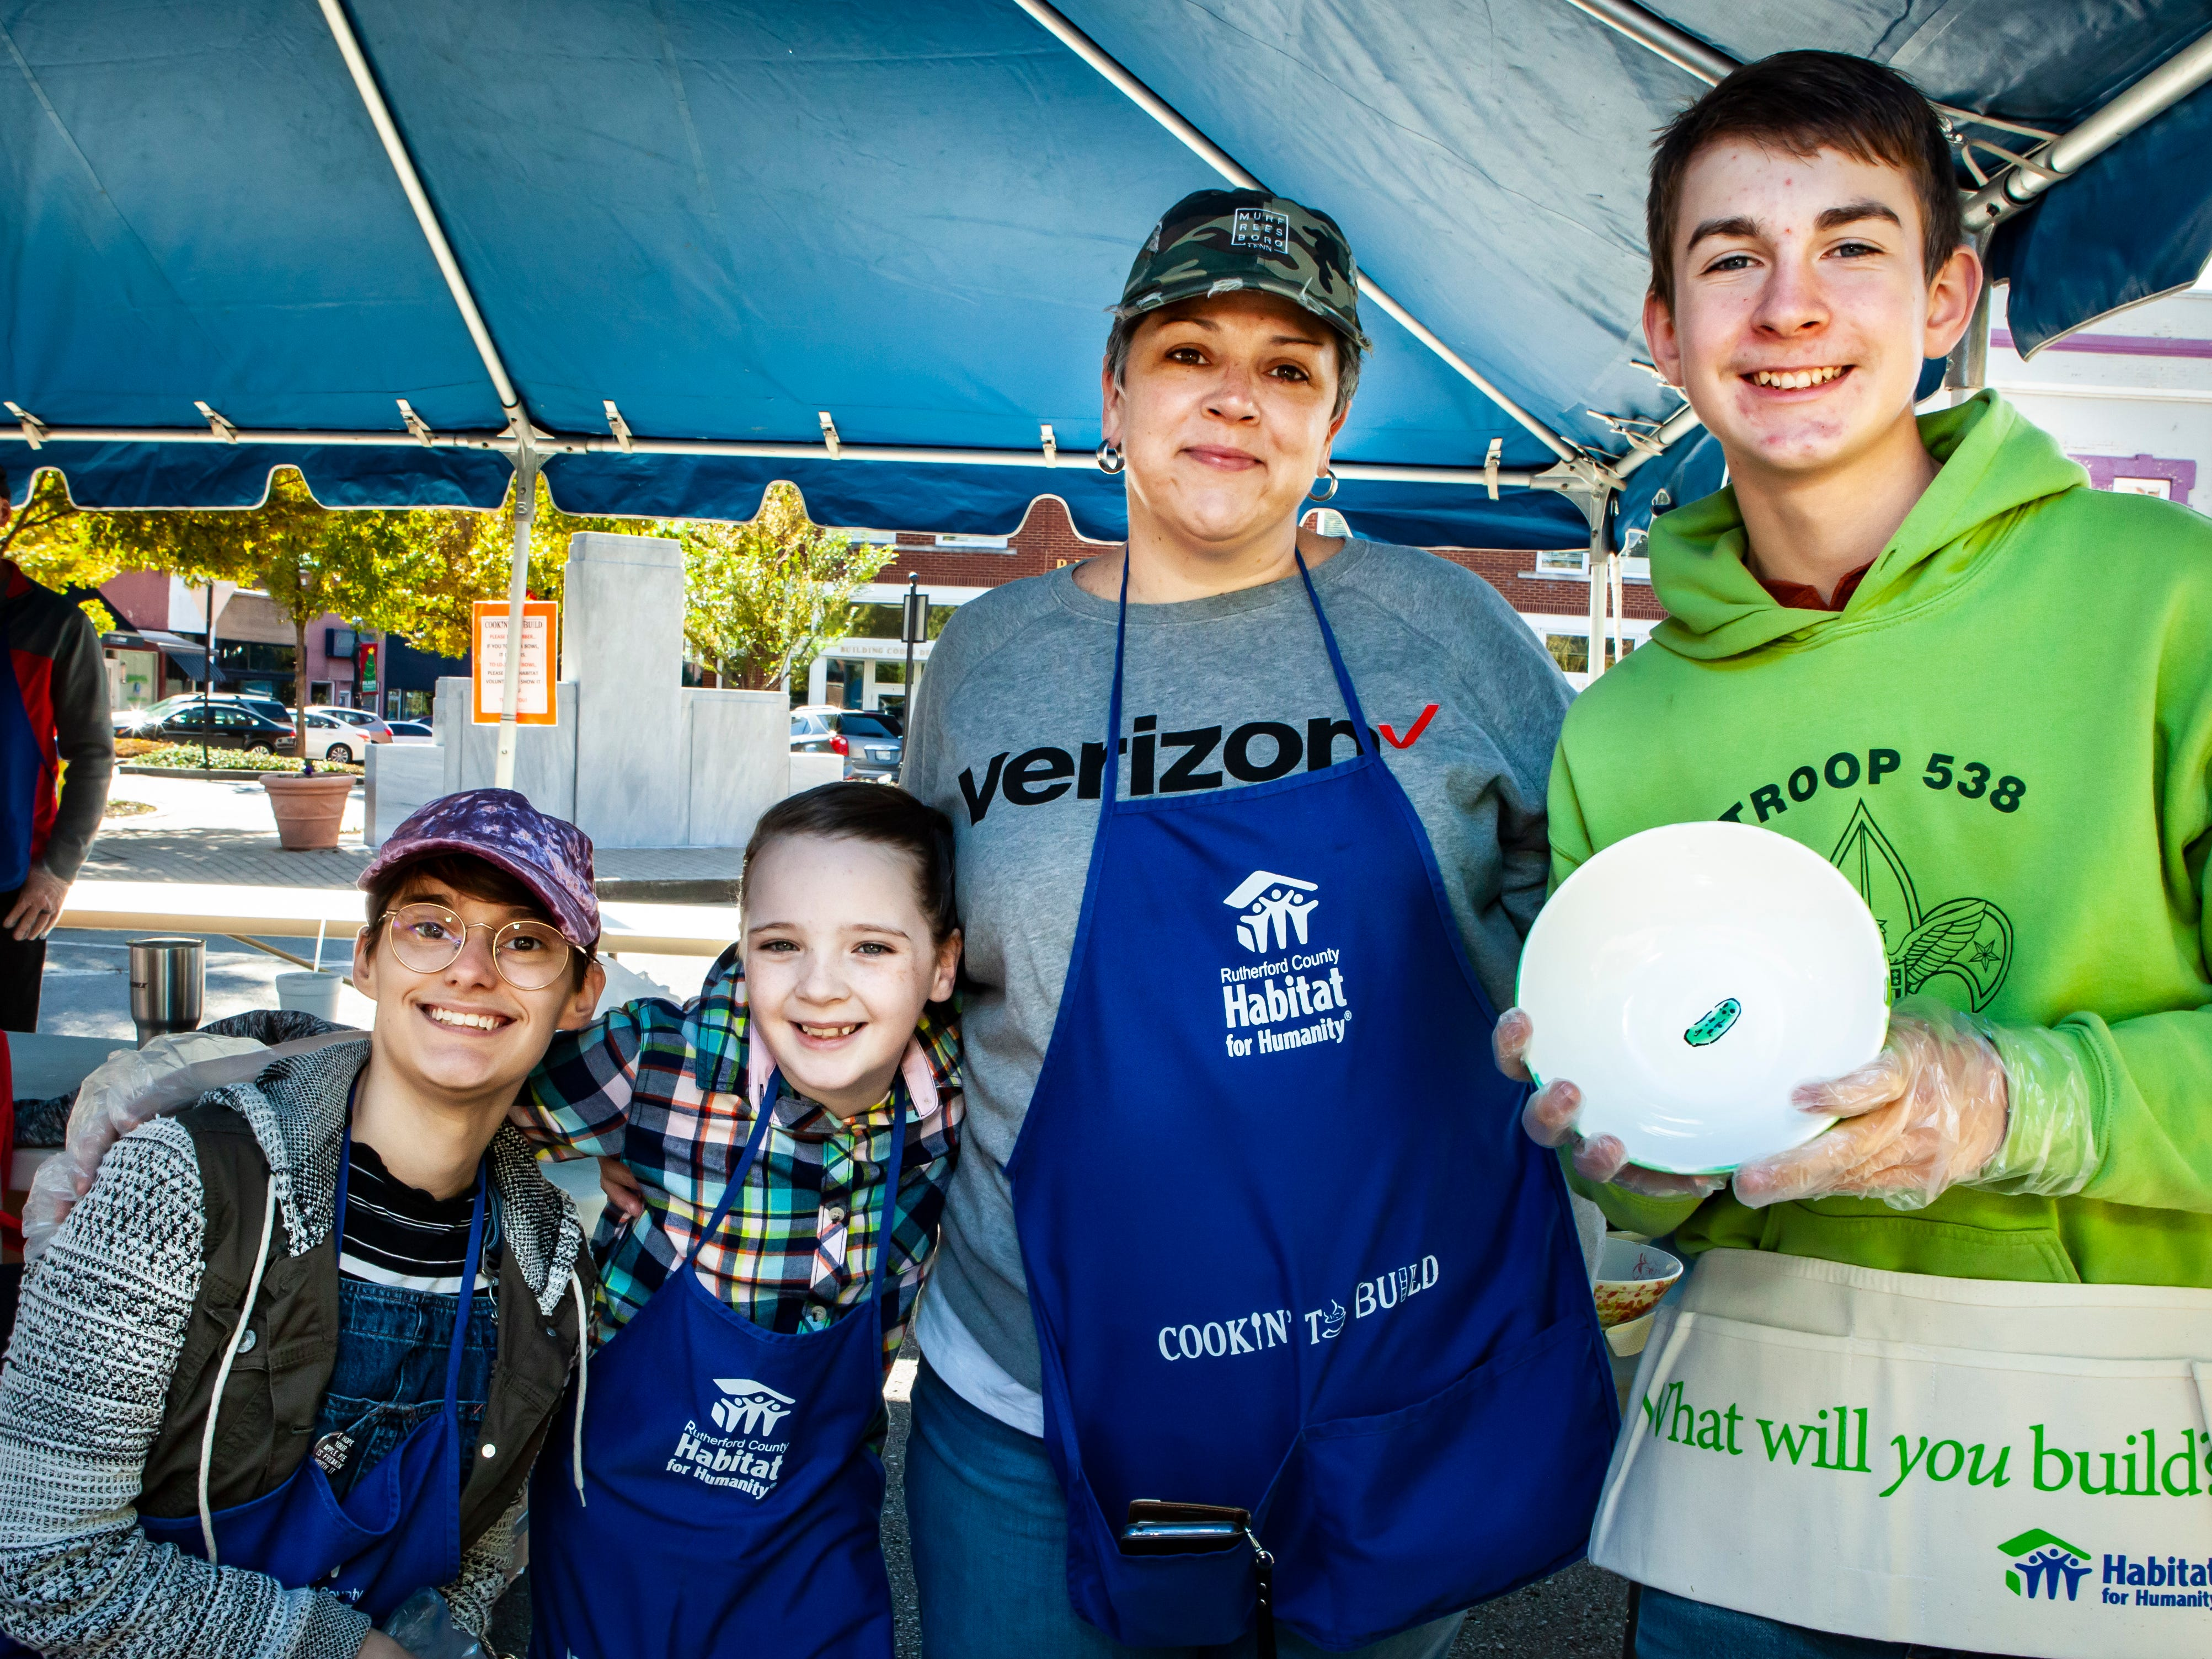 Rutherford County Habitat for Humanity's 2018 Cookin' to Build fundraiser on Saturday, Nov. 3, 2018.